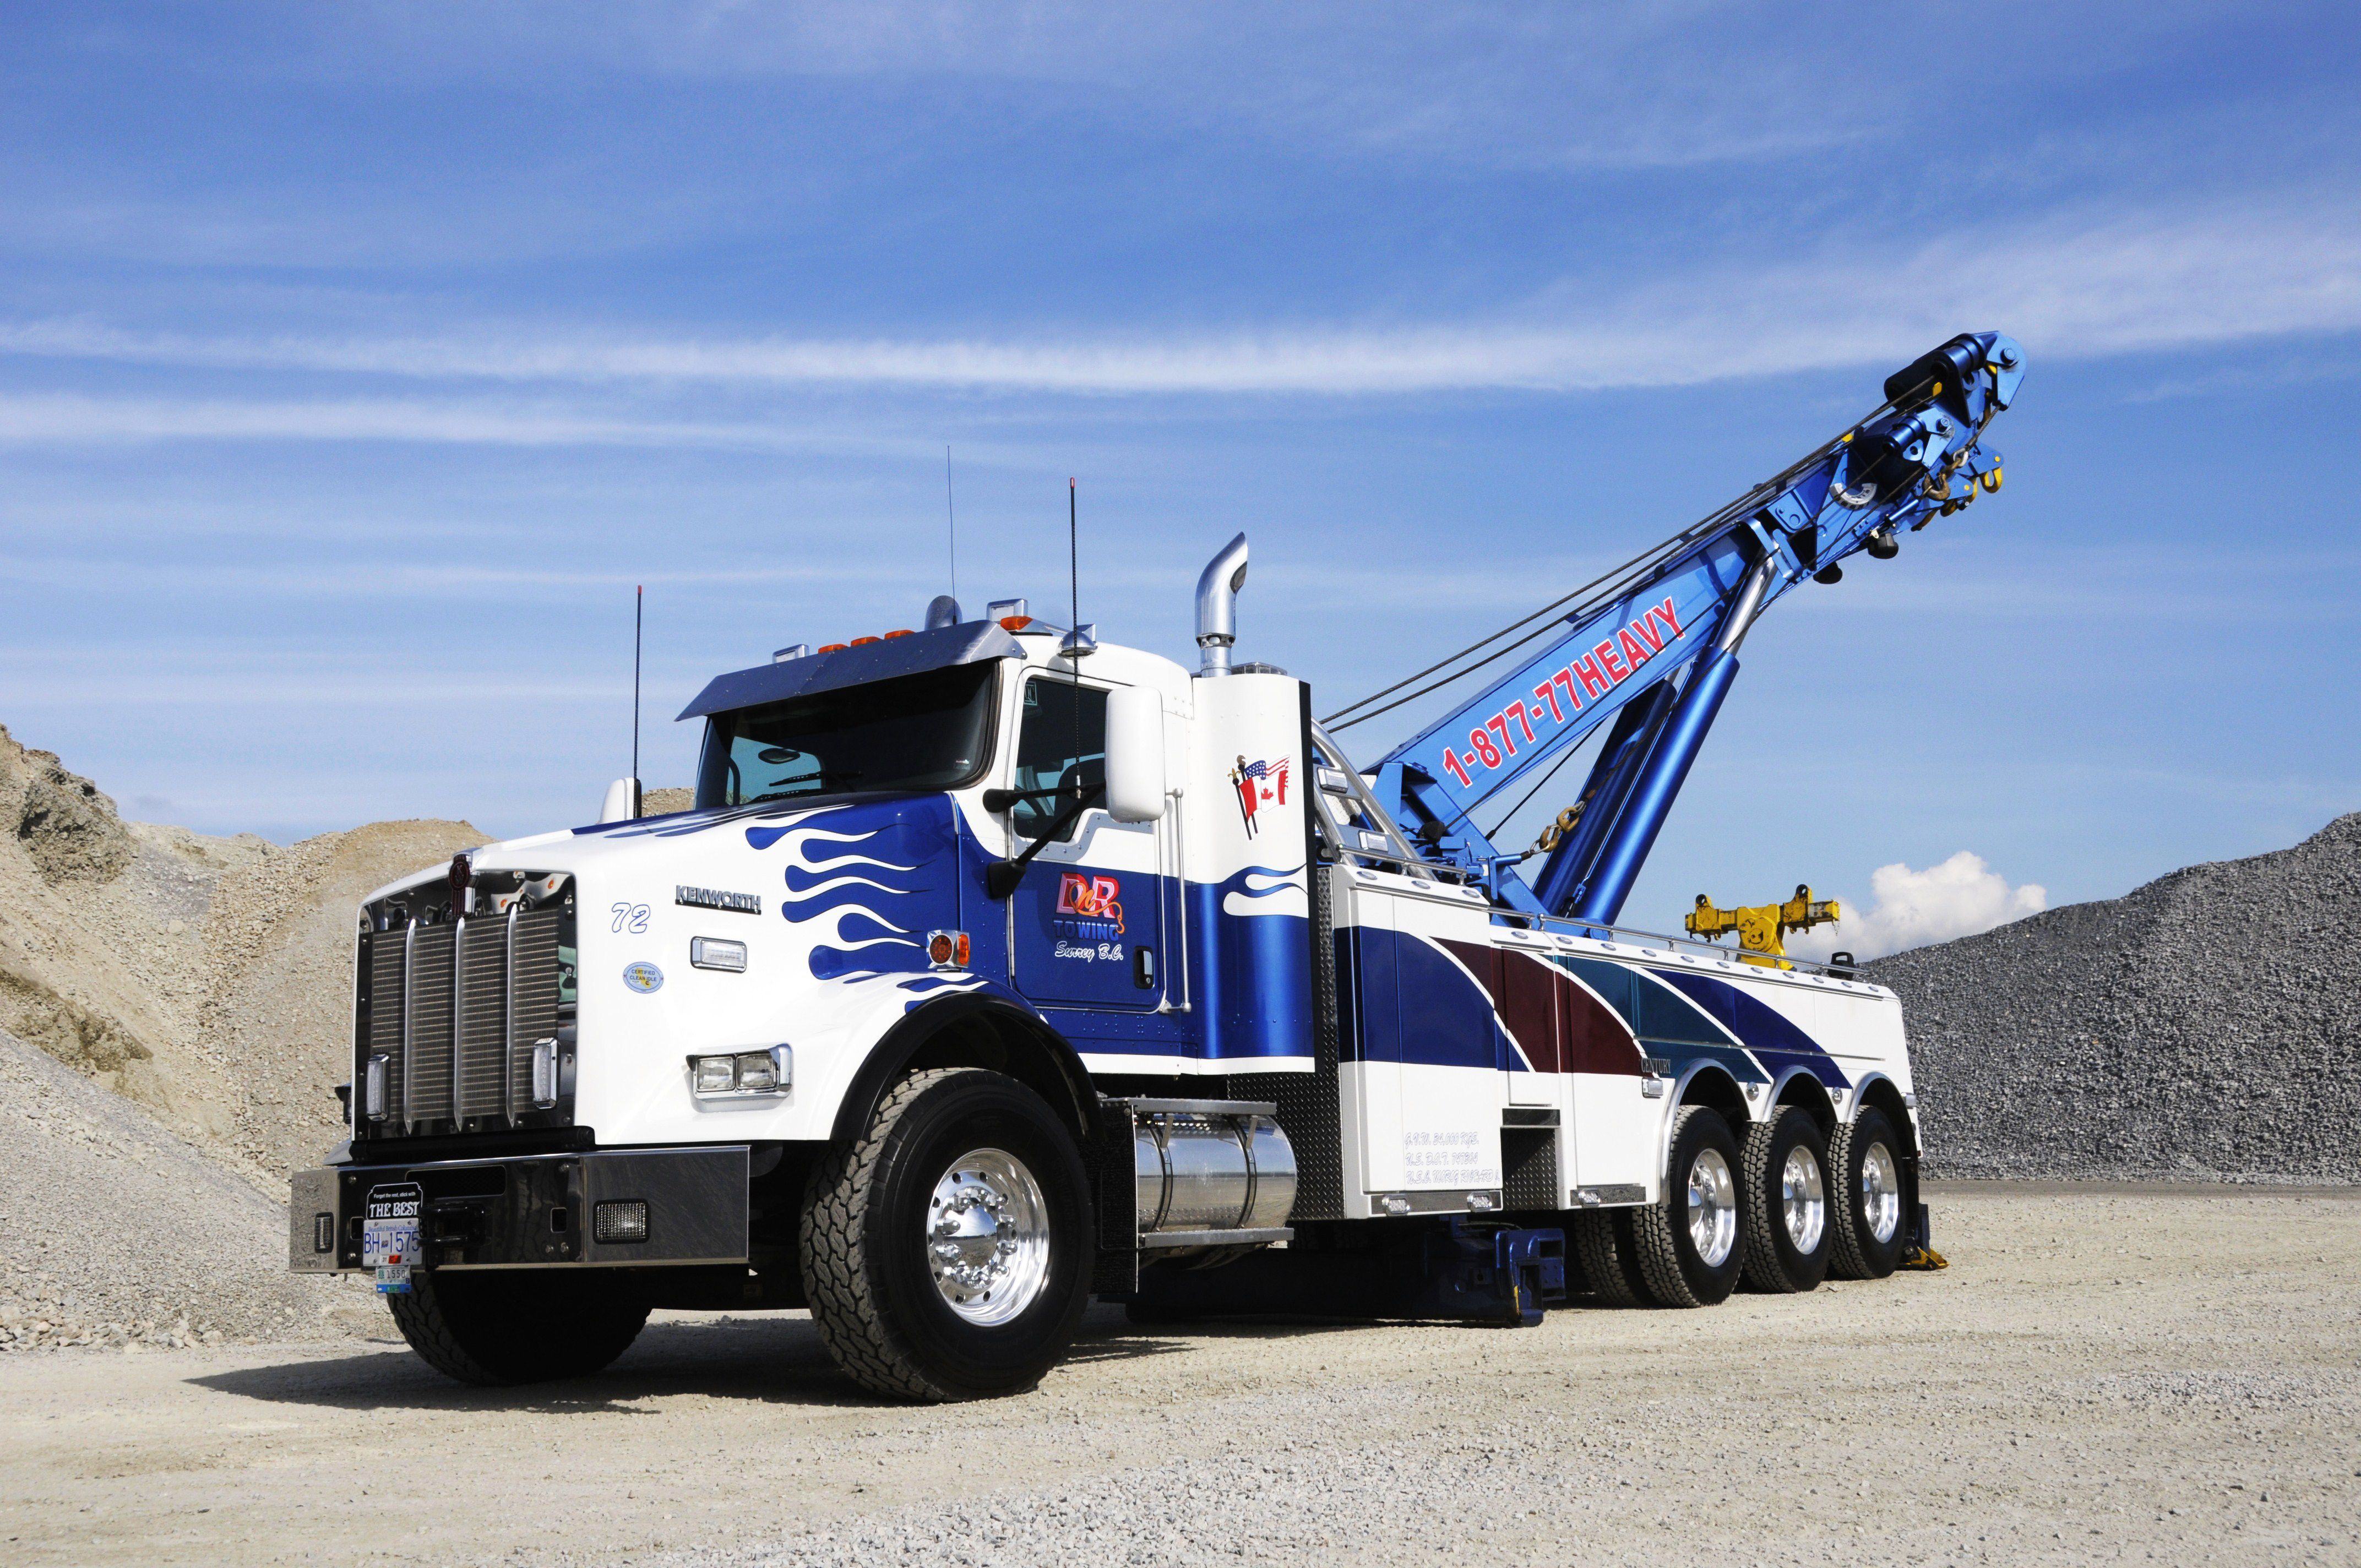 Australia kenworth tri axle heavy duty tow truck wrecker heavy duty towing pinterest tow truck rigs and cars